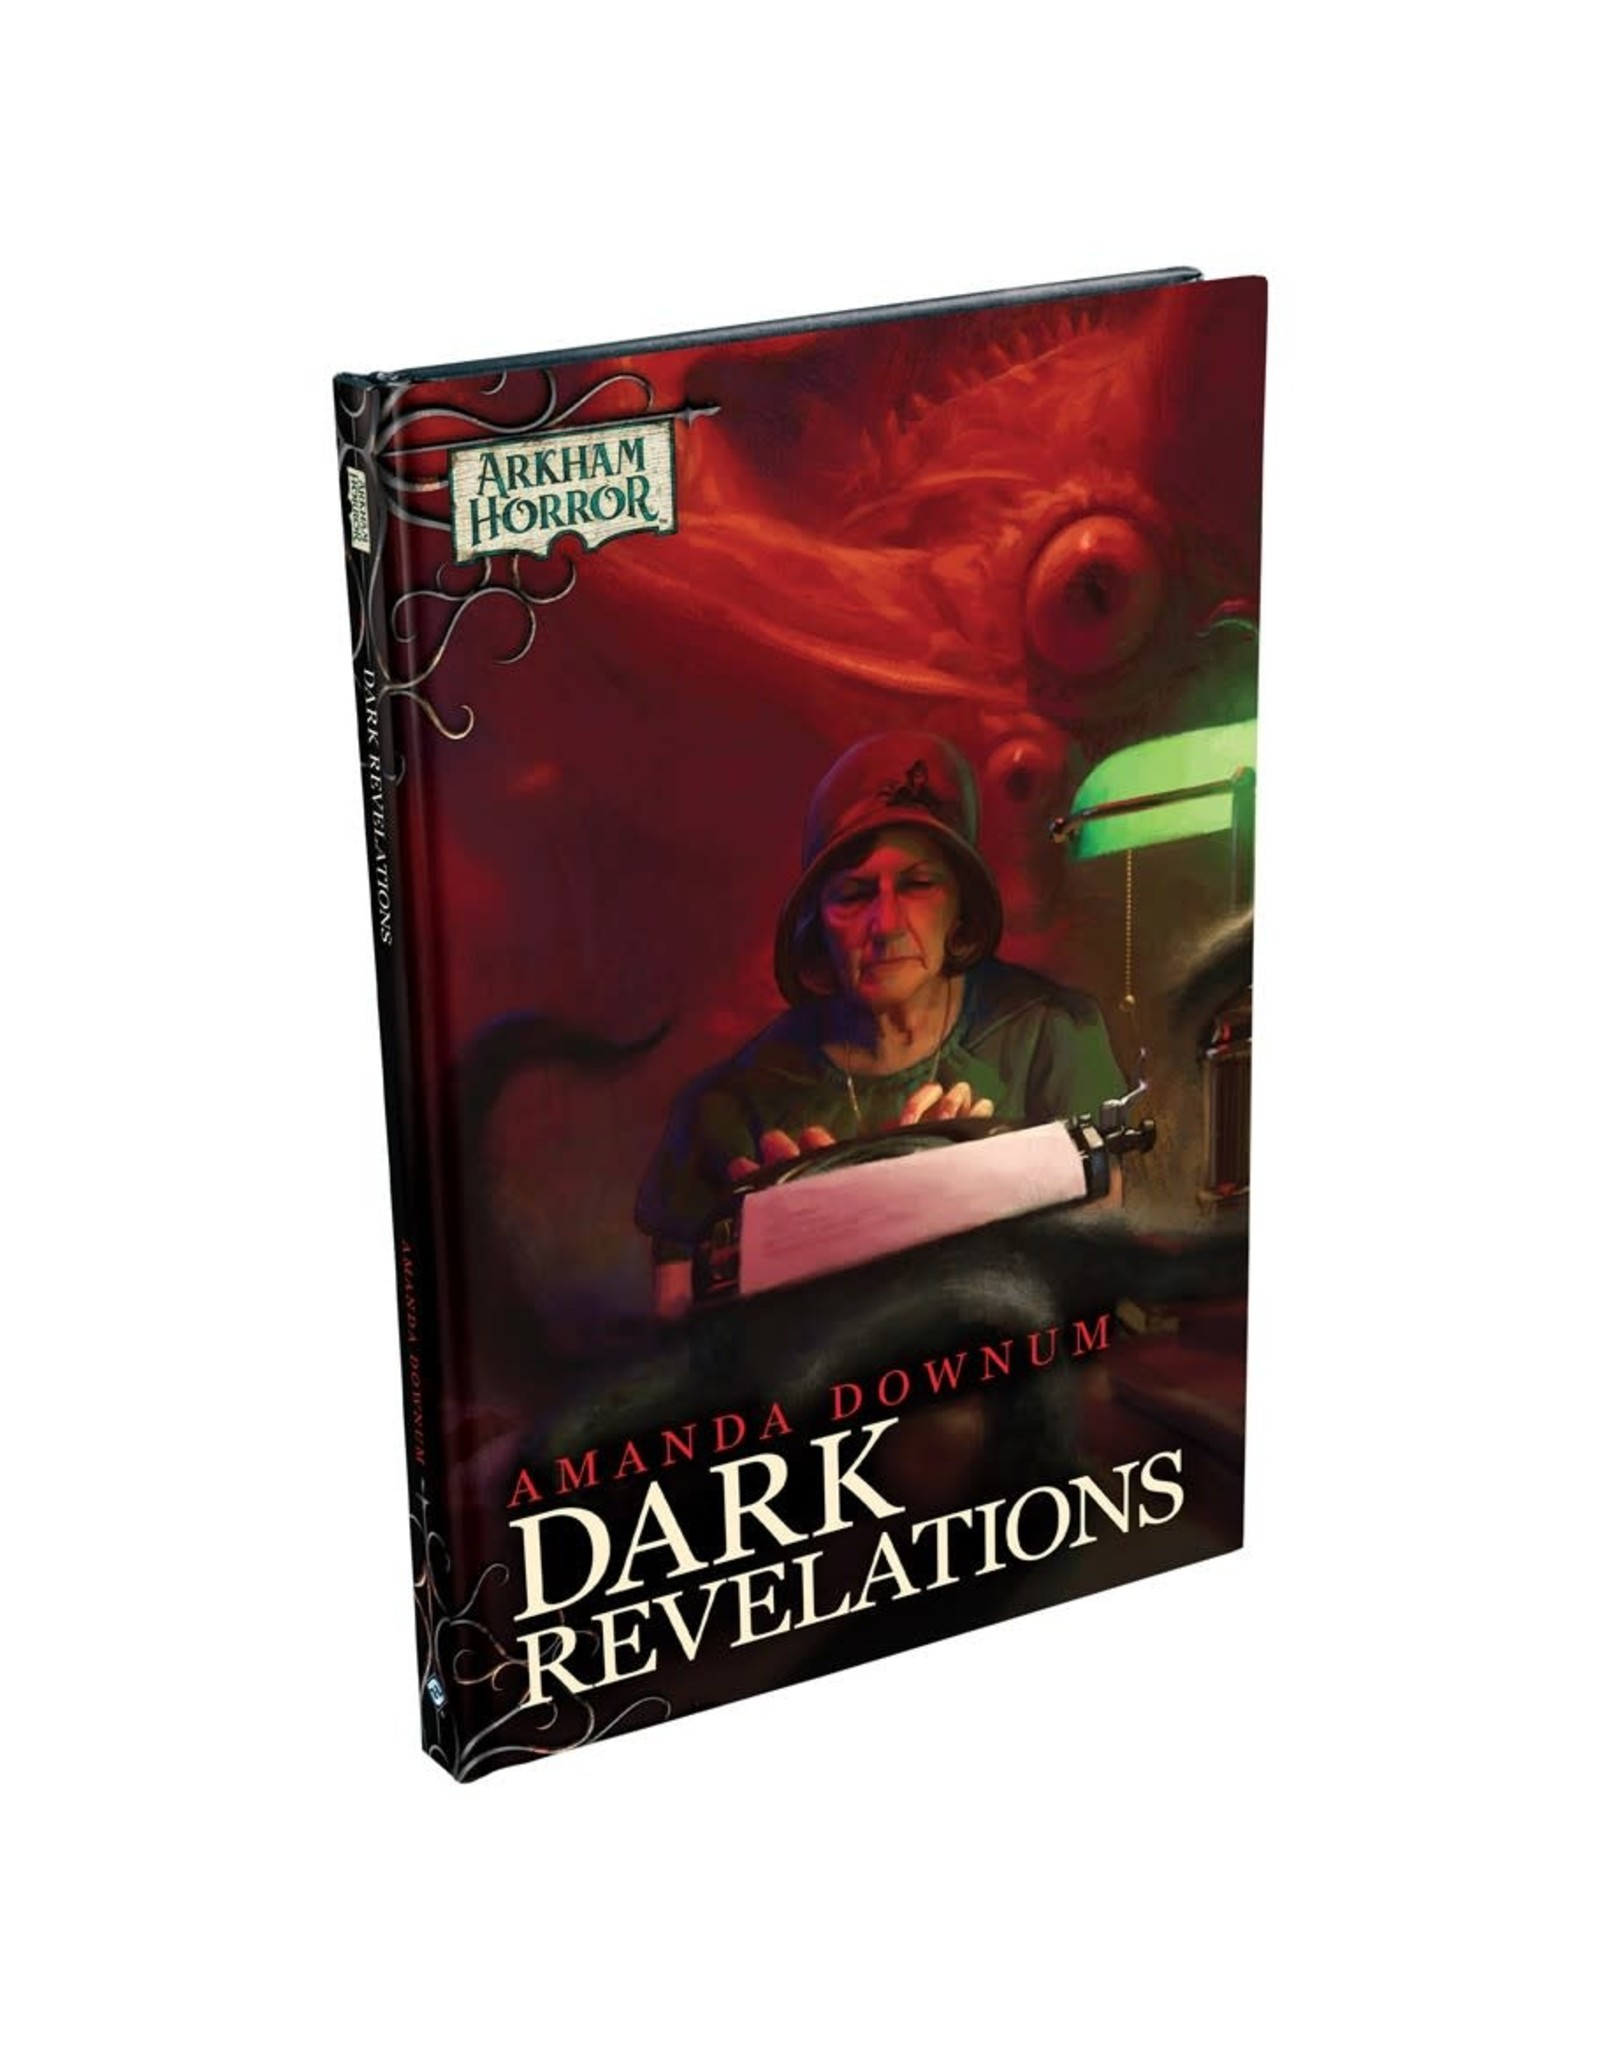 Fantasy Flight Games Arkham Horror Dark Revelations novella